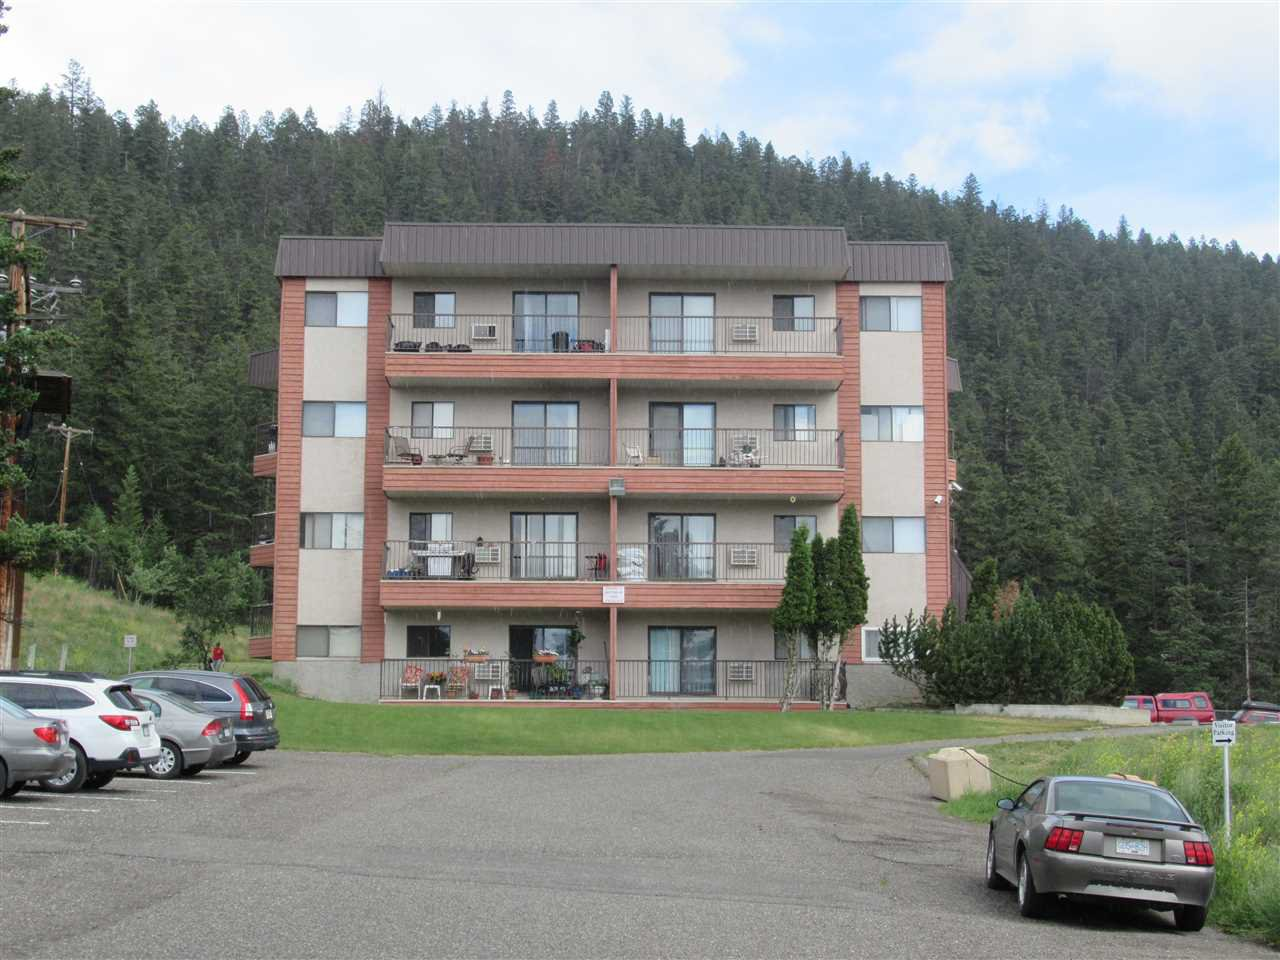 Main Photo: 410 280 N BROADWAY Avenue in Williams Lake: Williams Lake - City Condo for sale (Williams Lake (Zone 27))  : MLS®# R2430532